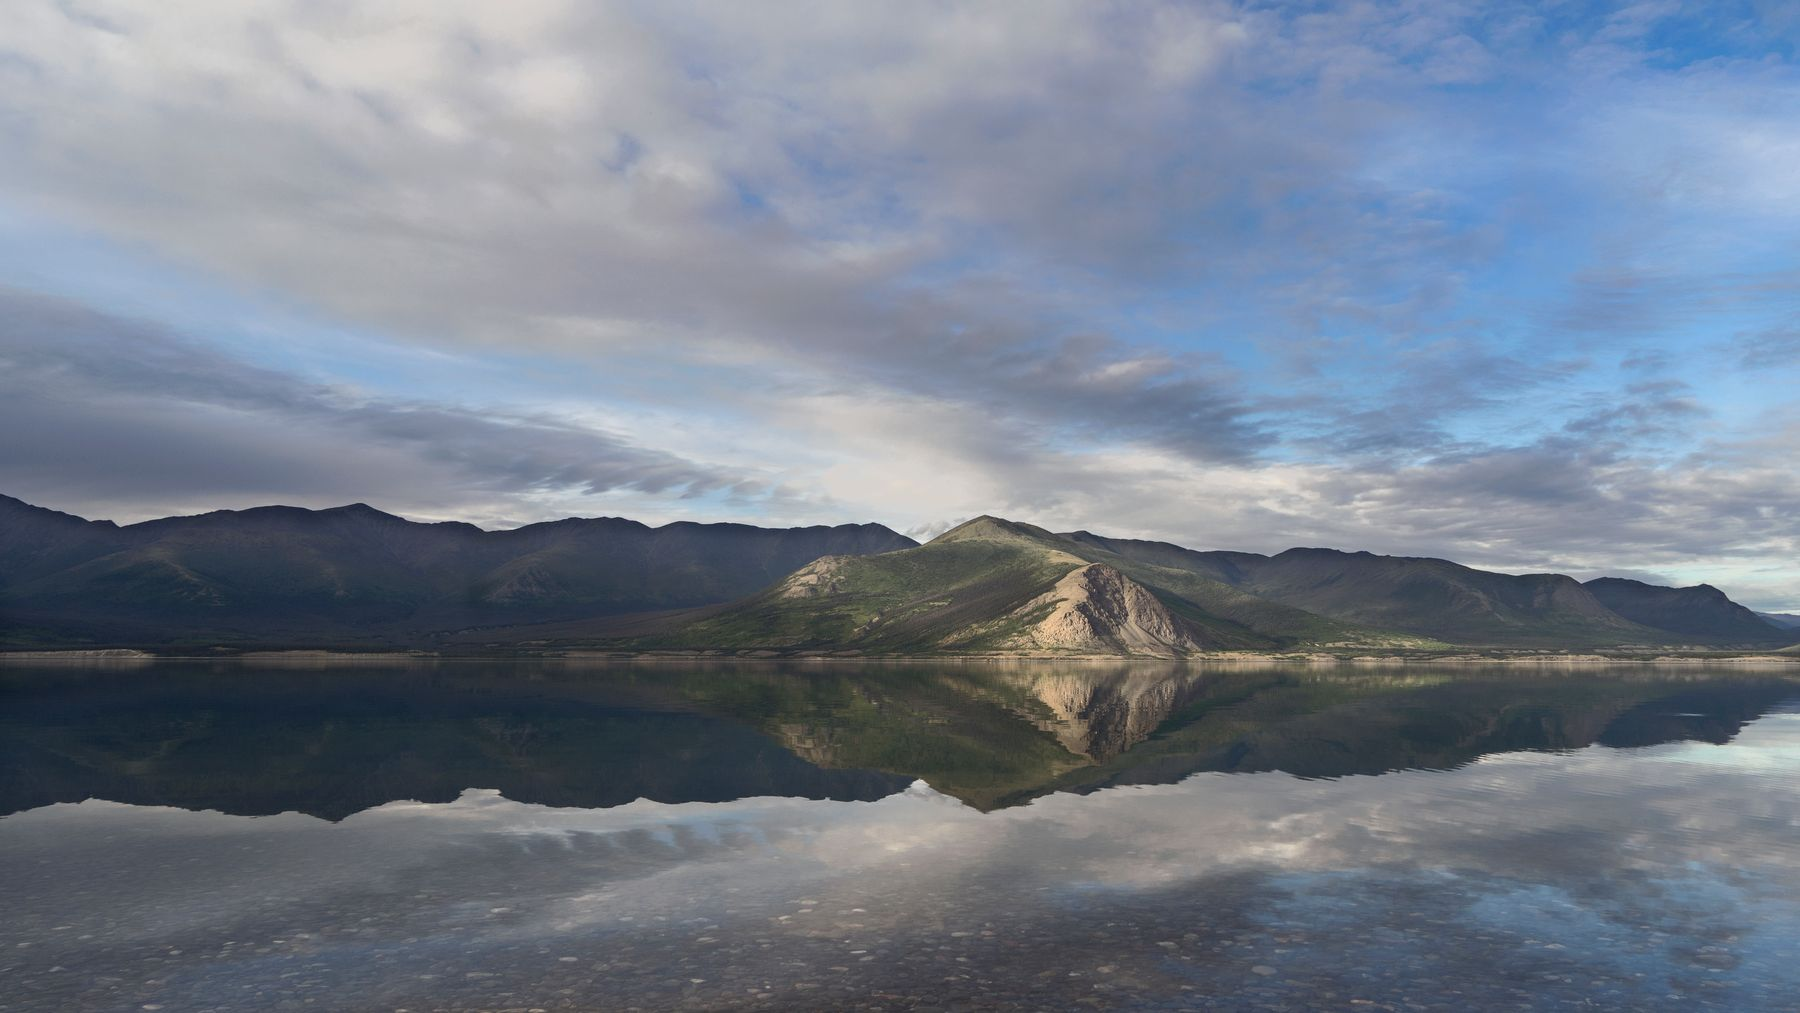 A mountain range reflected on a large body of water during daytime at Kluane national park in Canada.